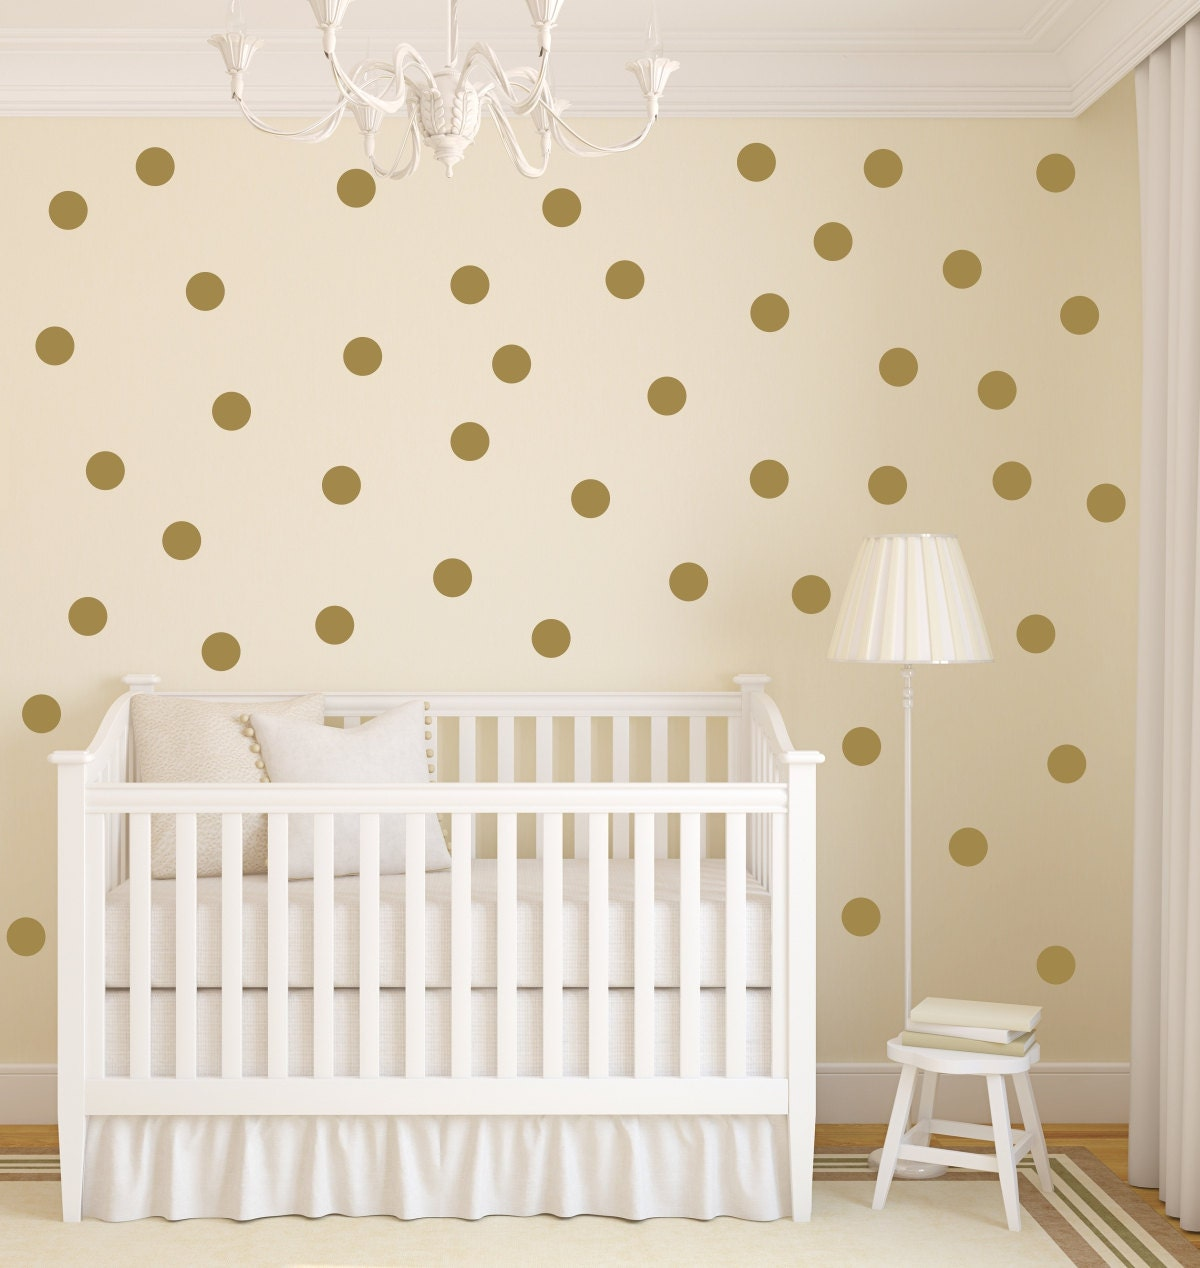 Polka dot wall decal gold dot decals gold vinyl dots for How to make polka dots on wall